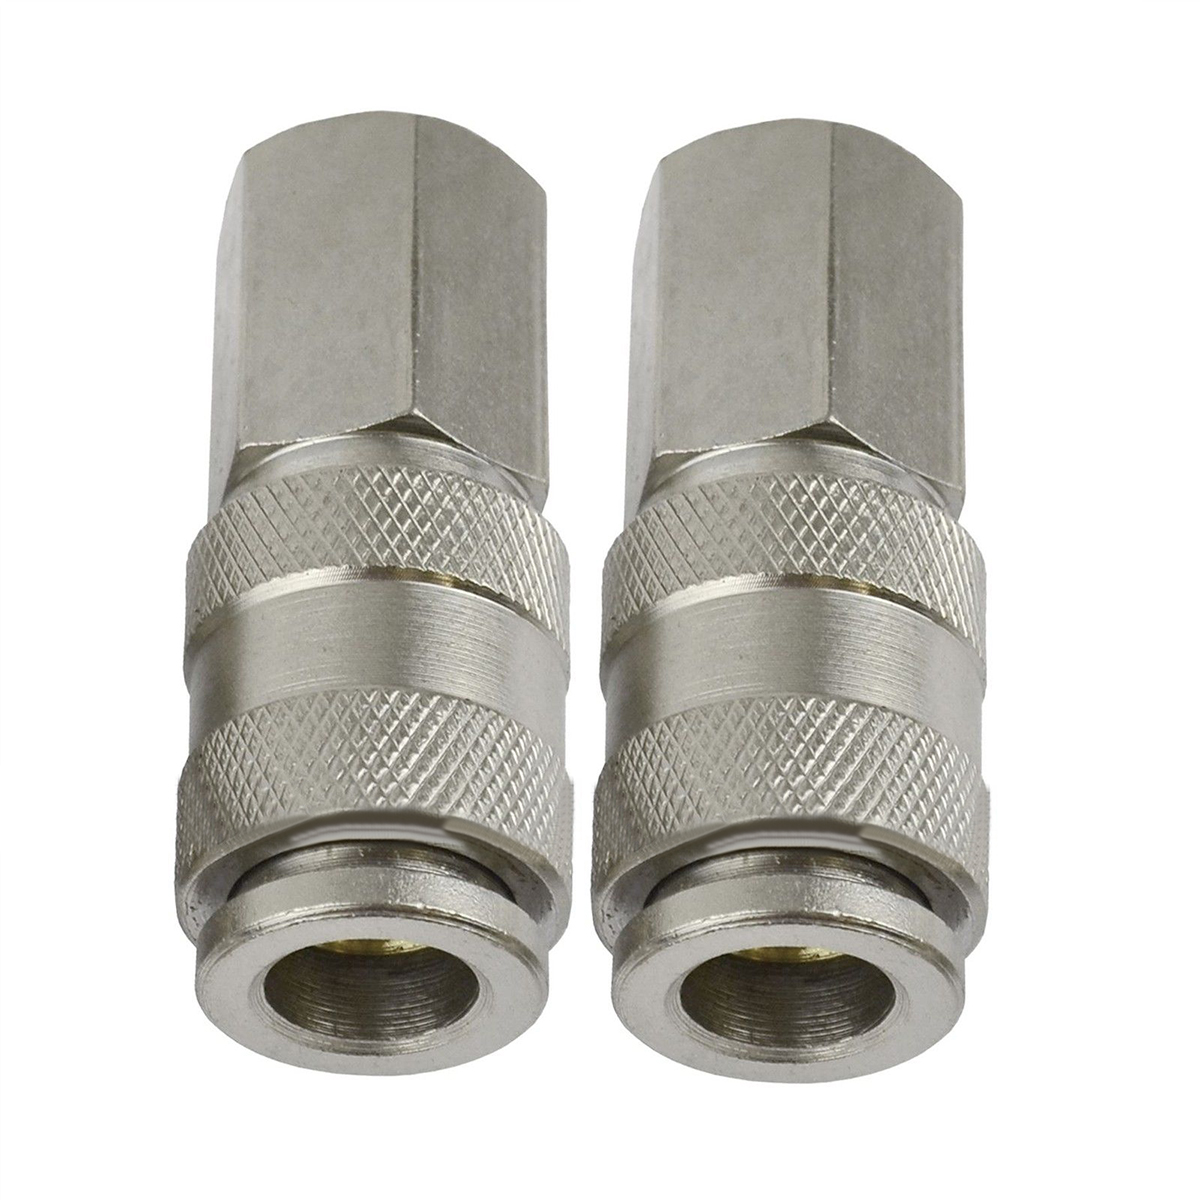 2pcs 1/4 BSP Female Euro Compressor Connectors Air Line Hose Quick Release Connector Fitting euro 1 4 bsp air line hose fitting coupling adapter hardening steel compressor connector quick coupler tool